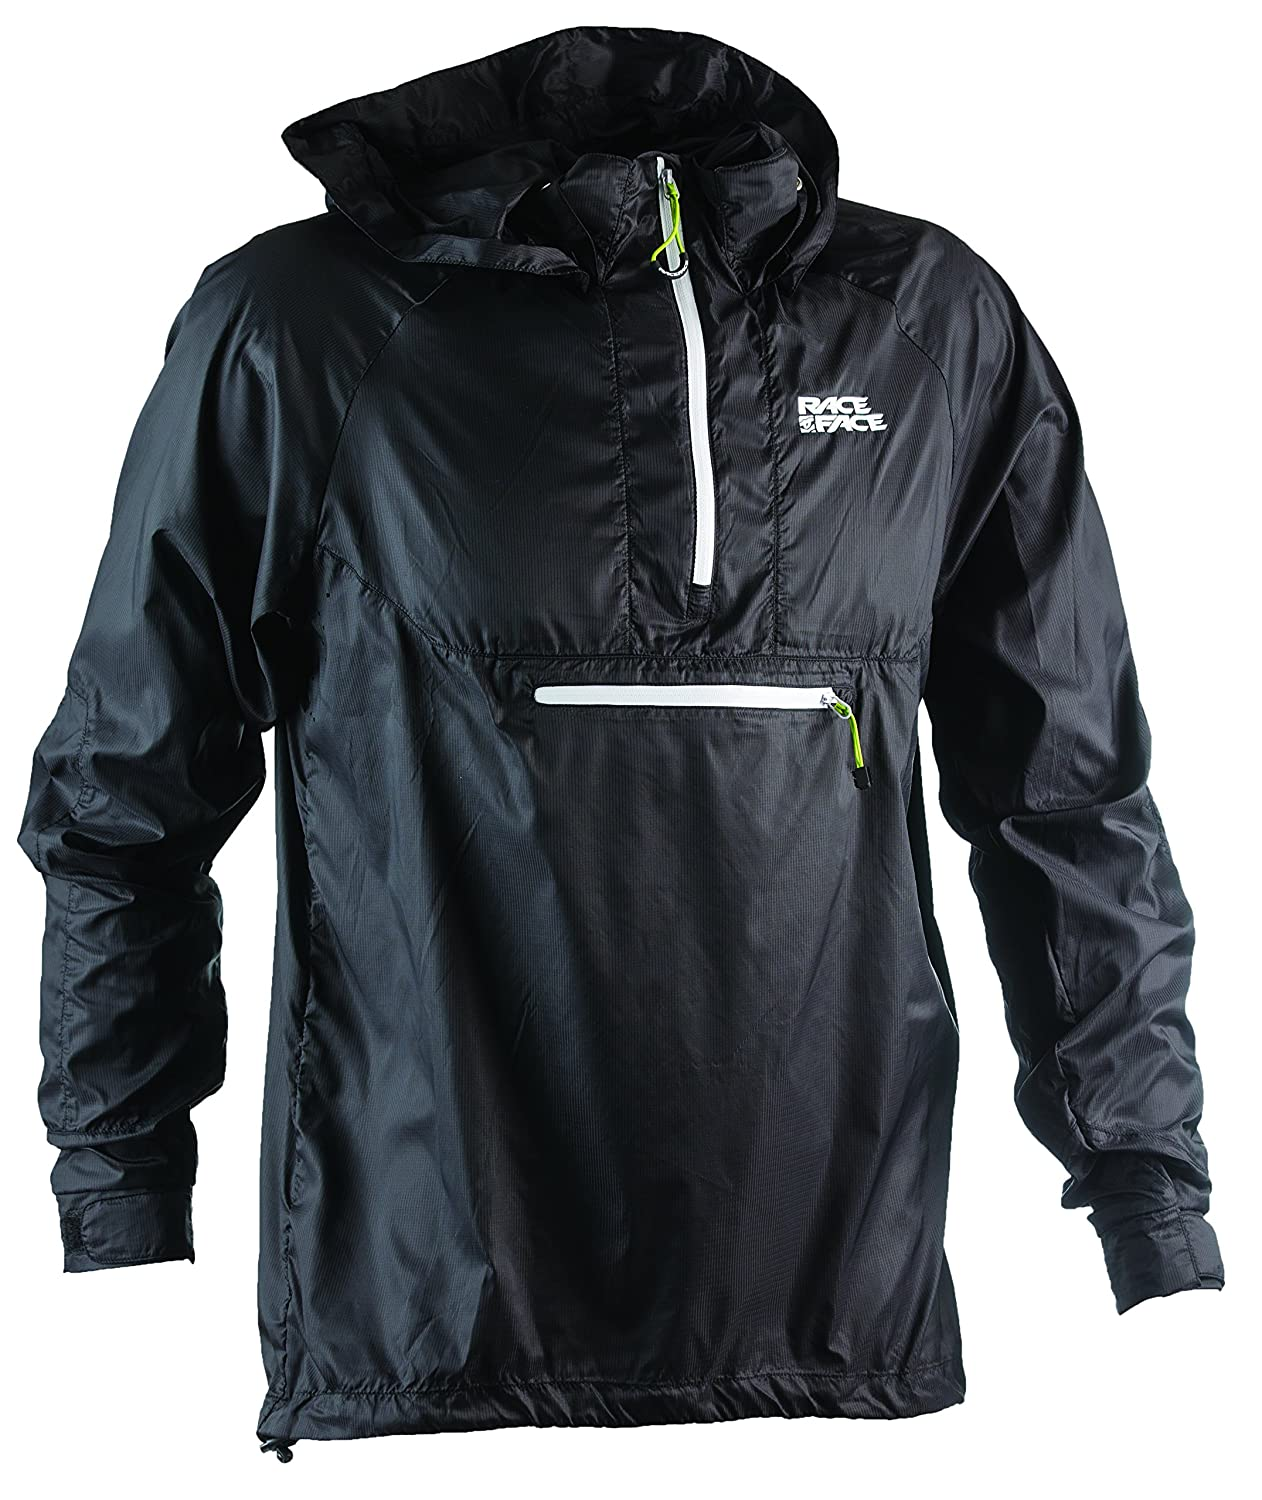 Race Face Nano Packable Jacket, Black, Medium KA440003